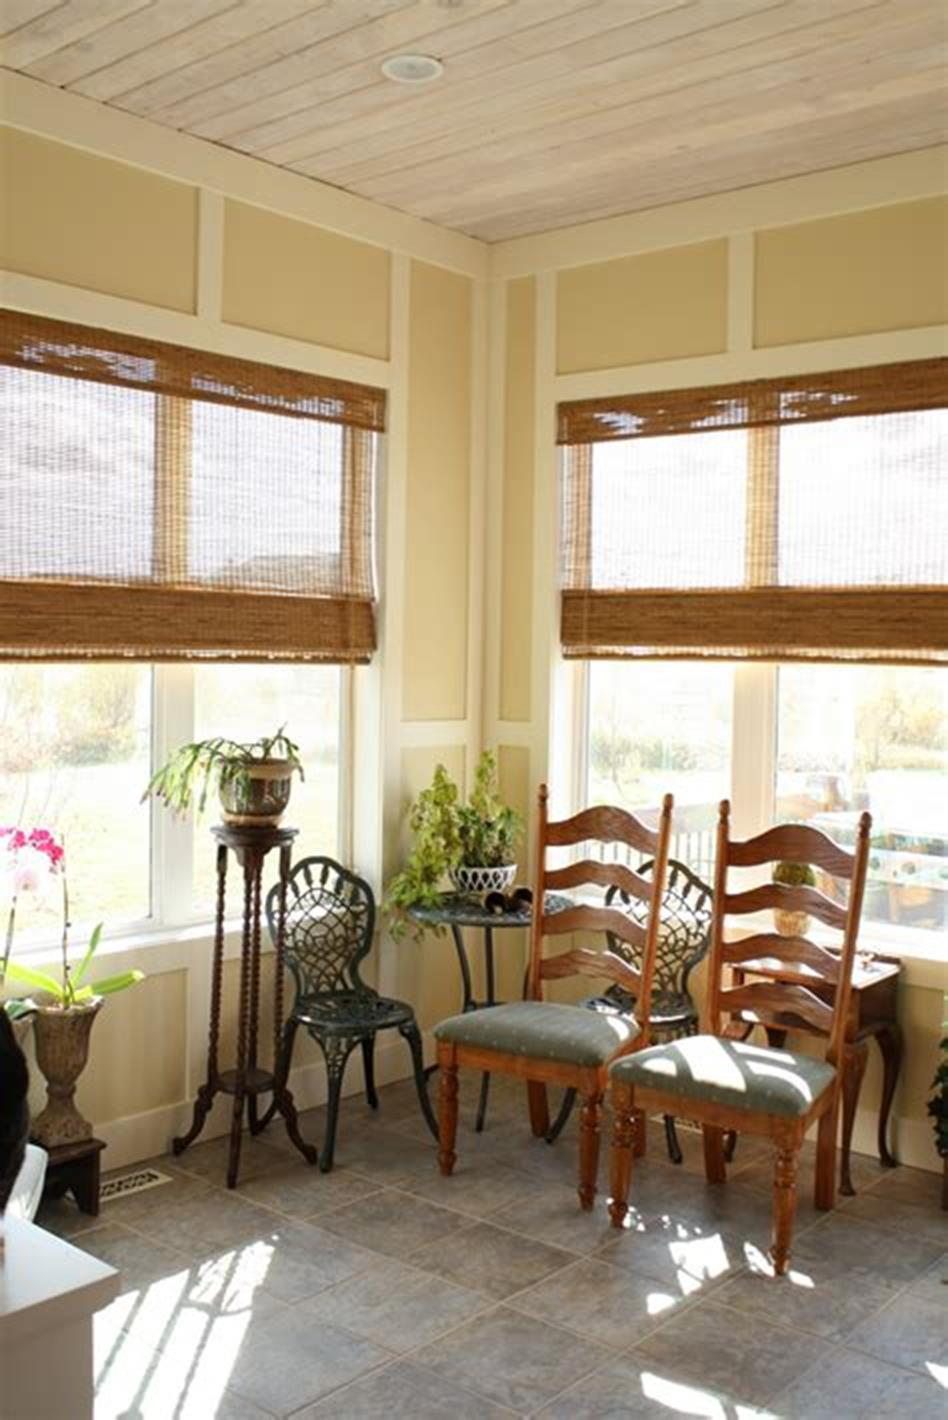 50 Most Popular Affordable Sunroom Design Ideas on a Budget 40